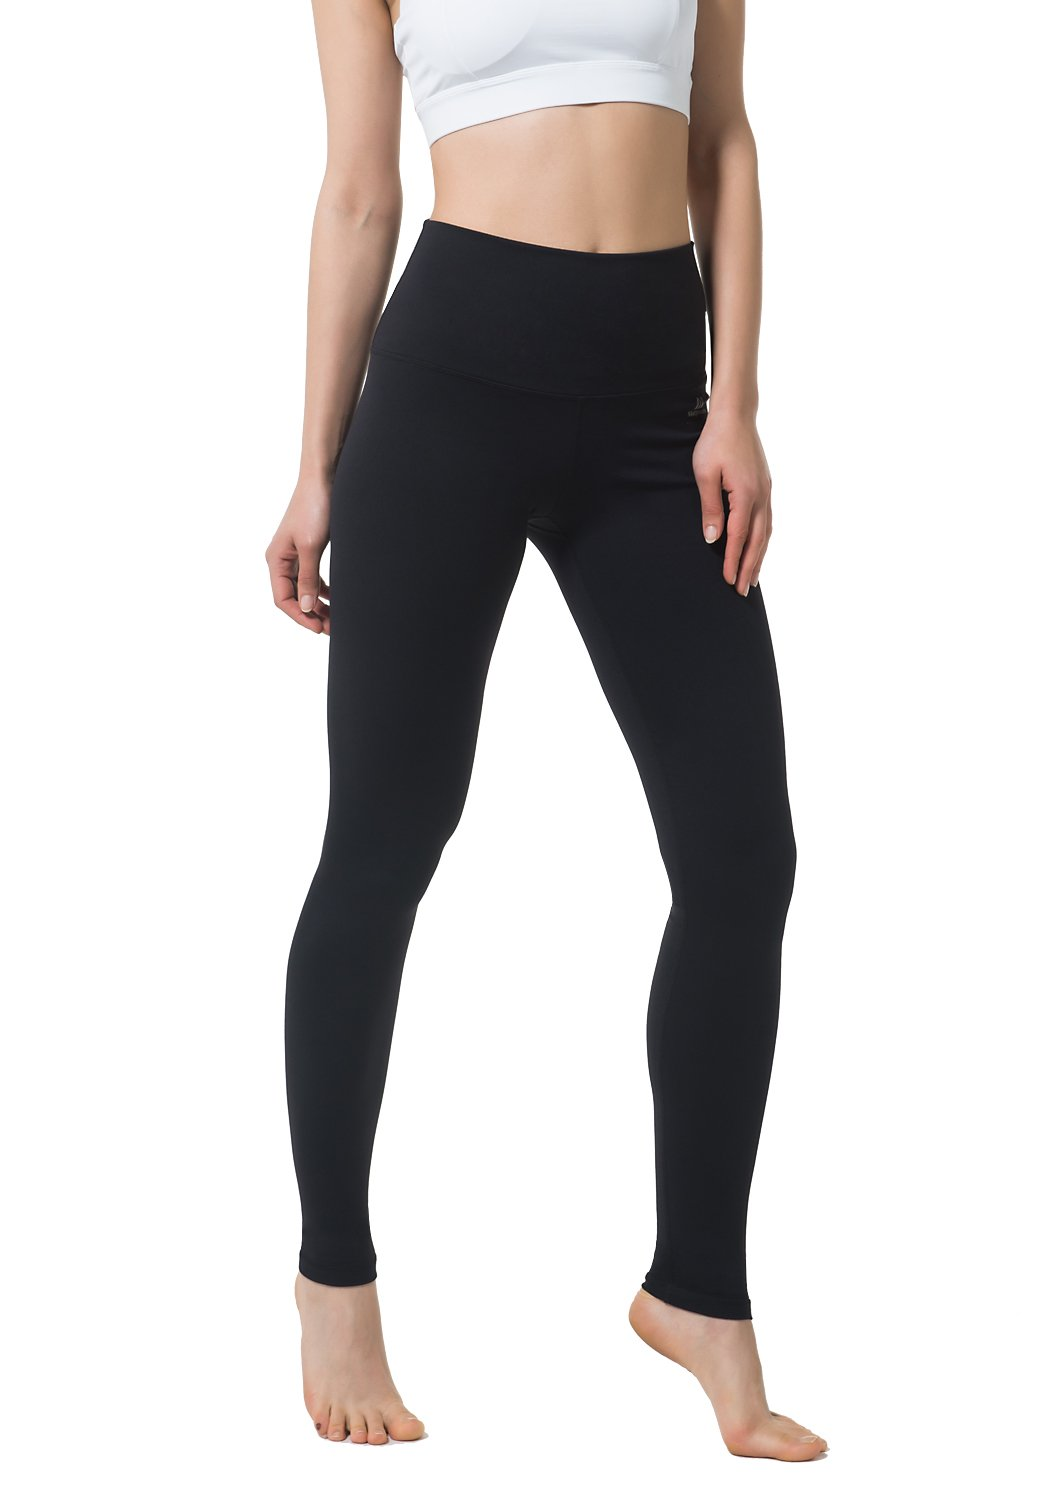 Matymats High Waist Yoga Pants for Women Stretched Gym Workout Tights Leggings